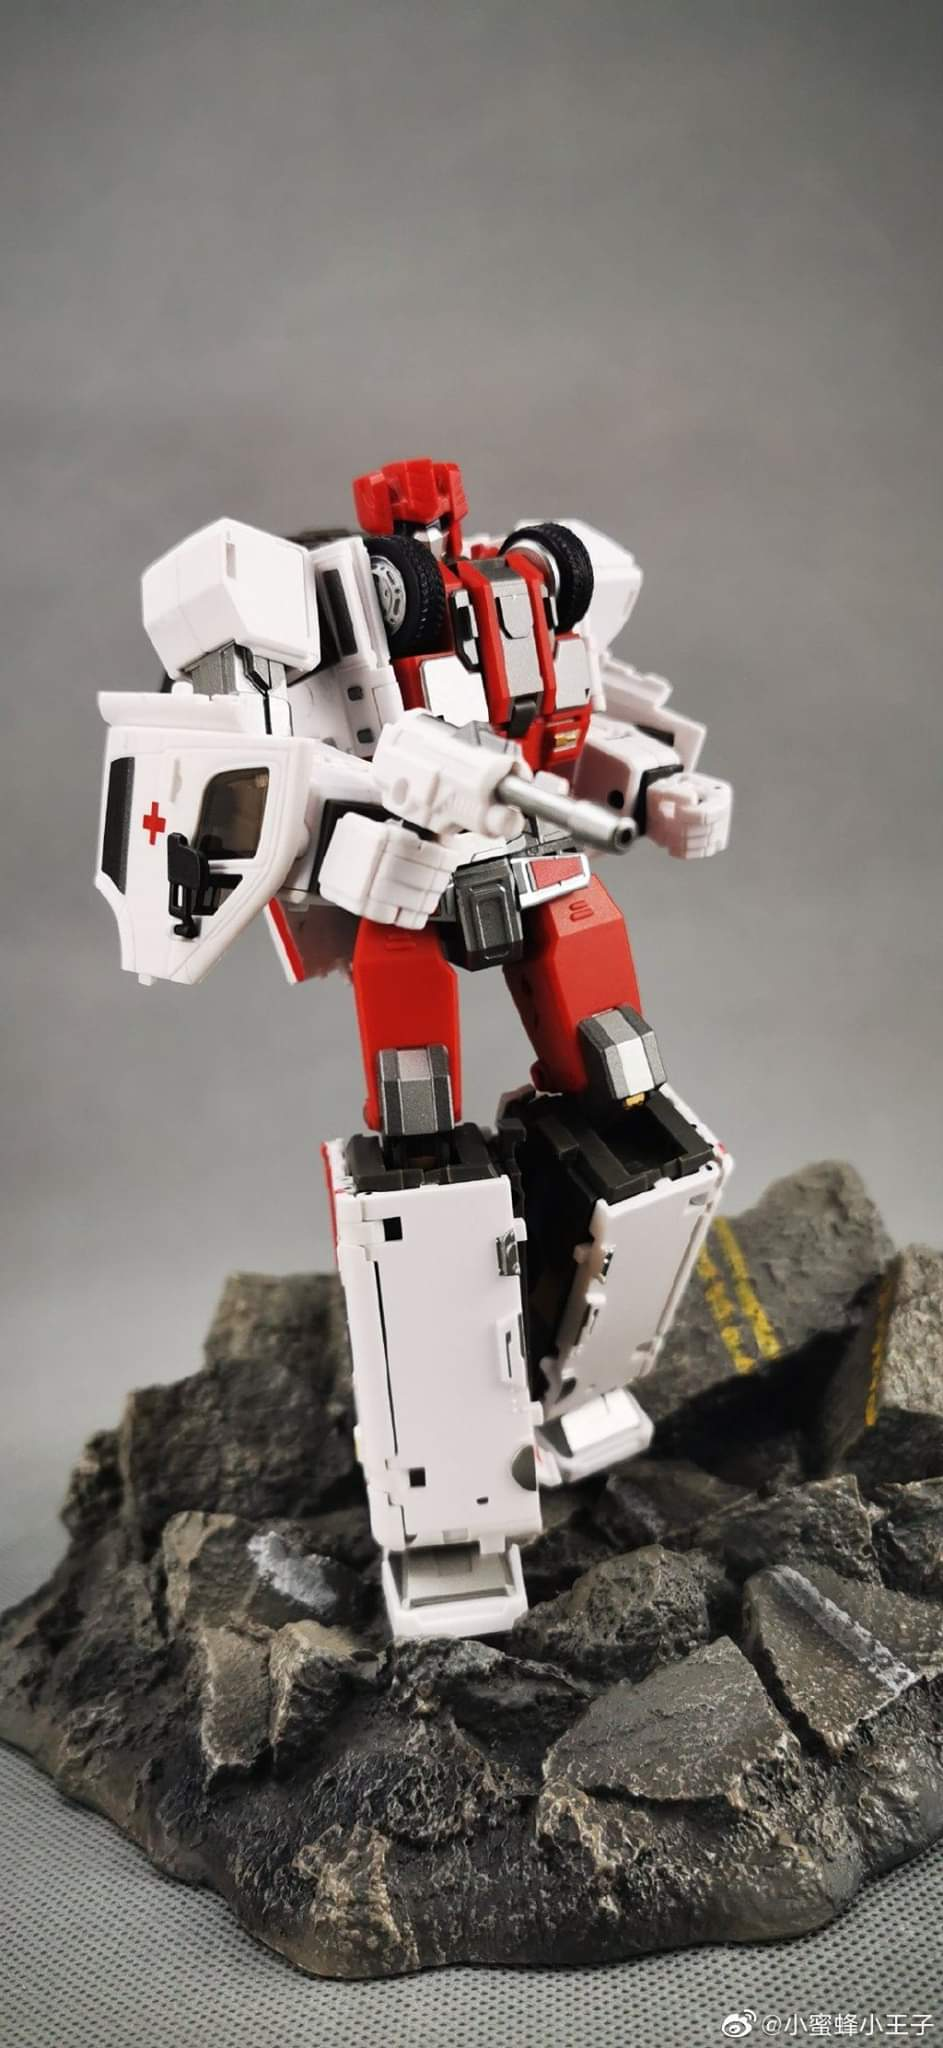 [Generation Toy] Produit Tiers - Jouet GT-08 Guardian - aka Defensor/Defenso - Page 2 BJNToLQ8_o